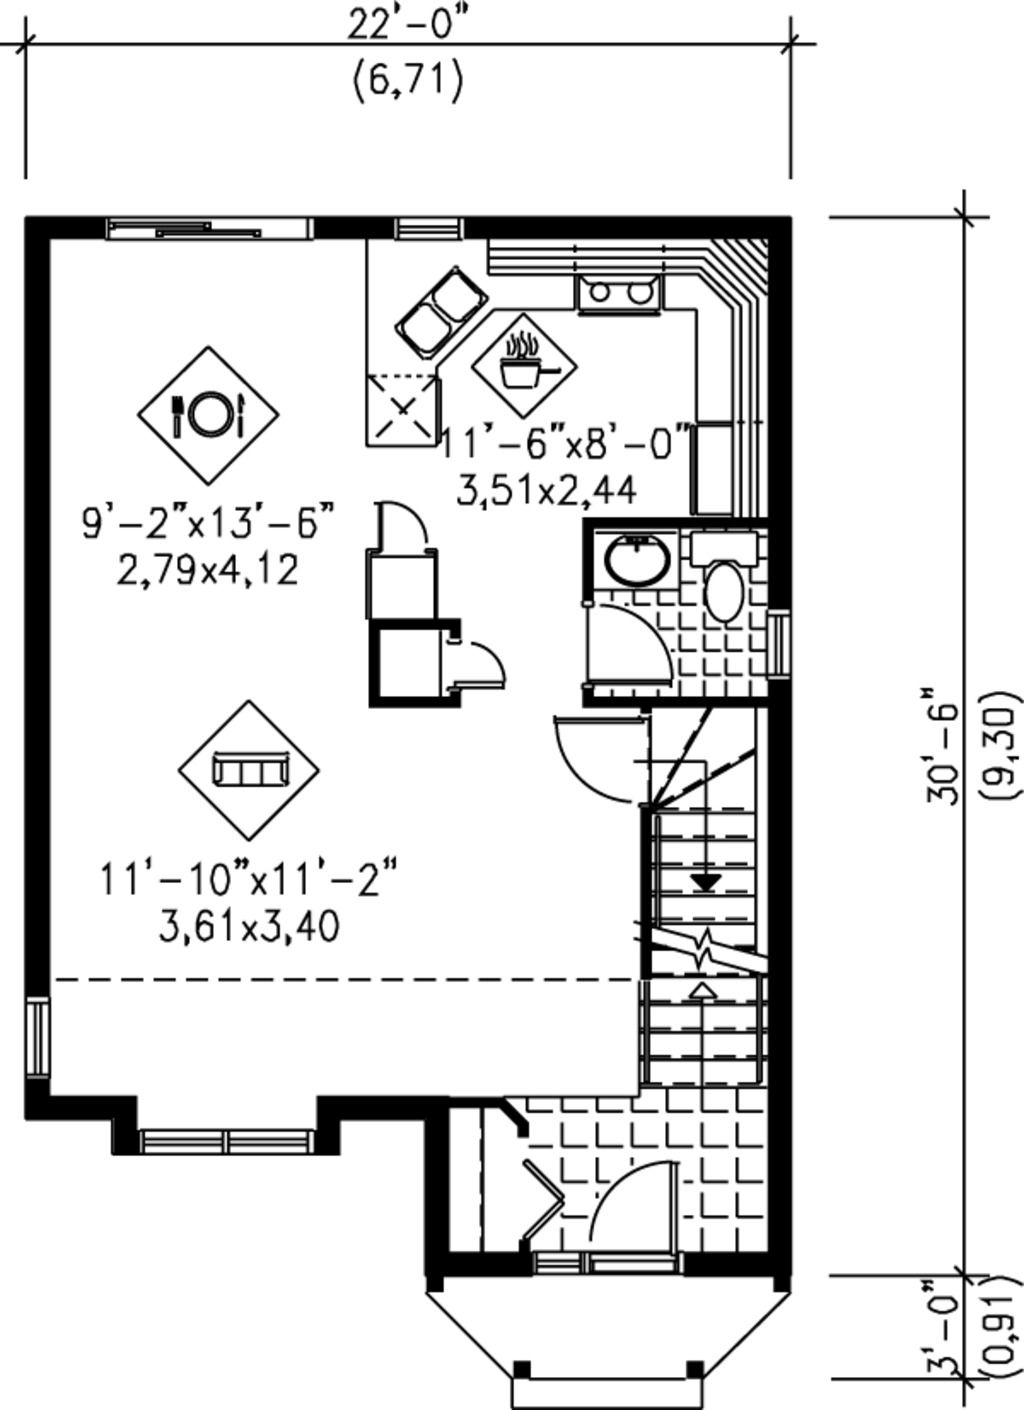 Cottage Style House Plan 2 Beds 1 5 Baths 1110 Sq Ft Plan 25 2039 Cottage Style House Plans House Plans Floor Plan Design